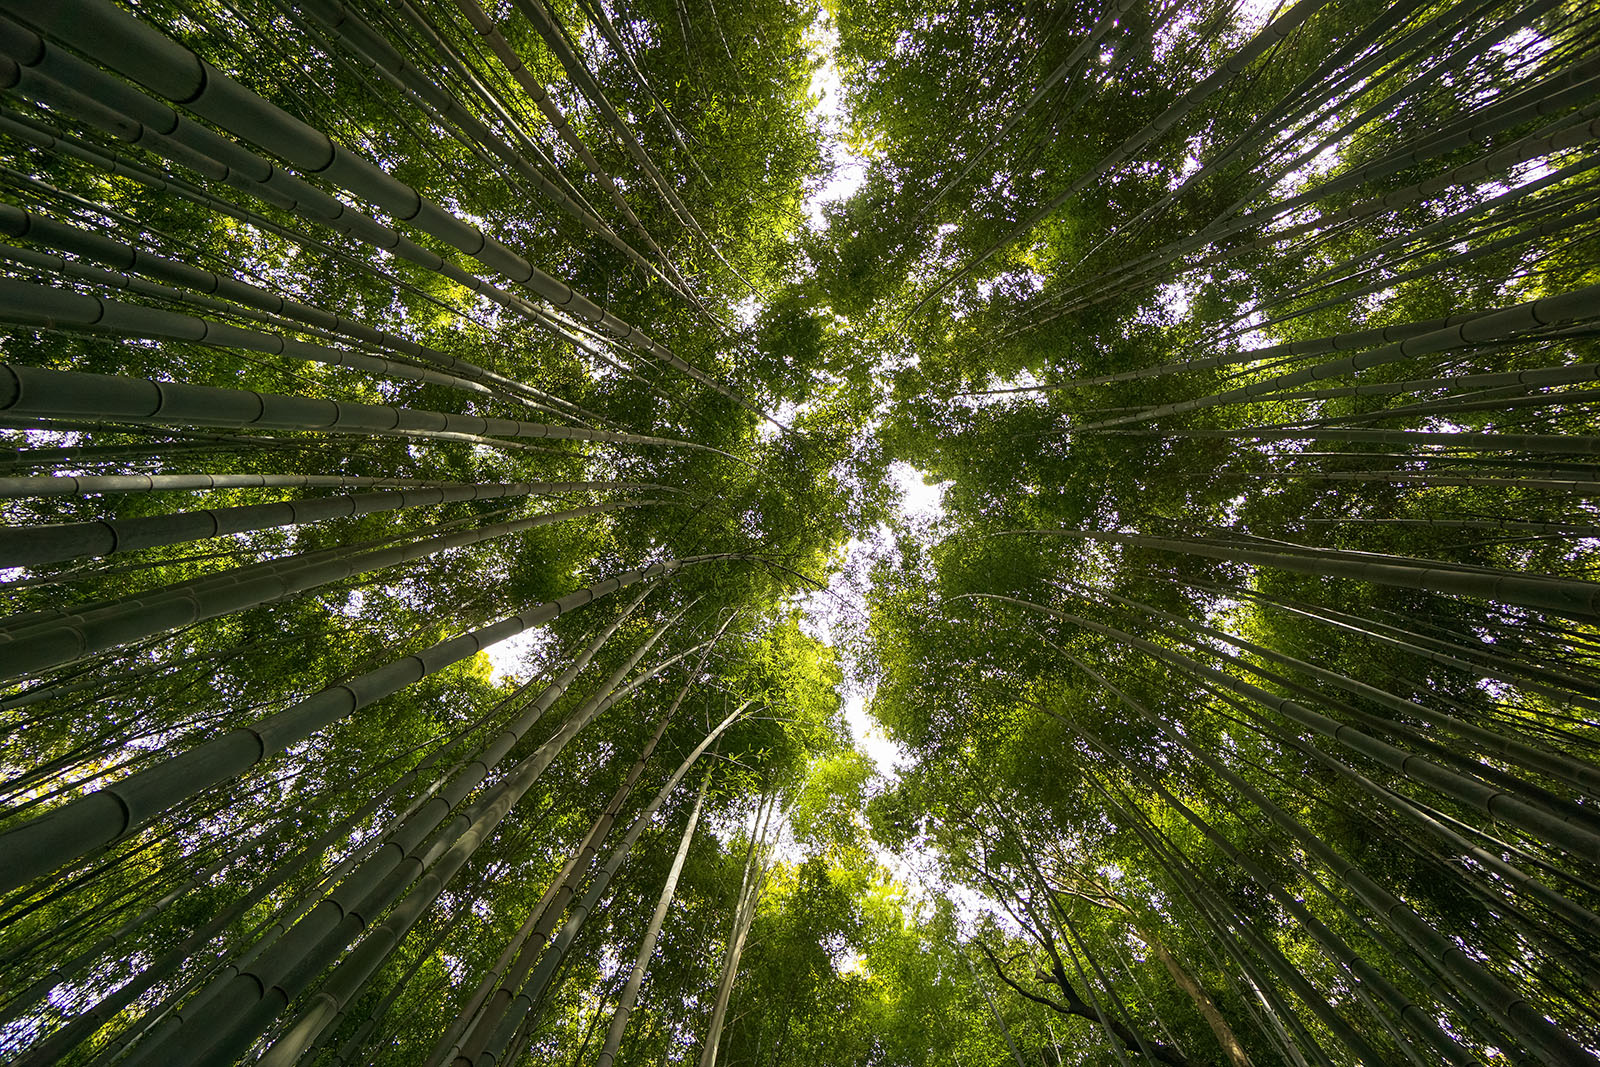 Arashiyama: Bamboo groves and stone statues  SUSHIBITS